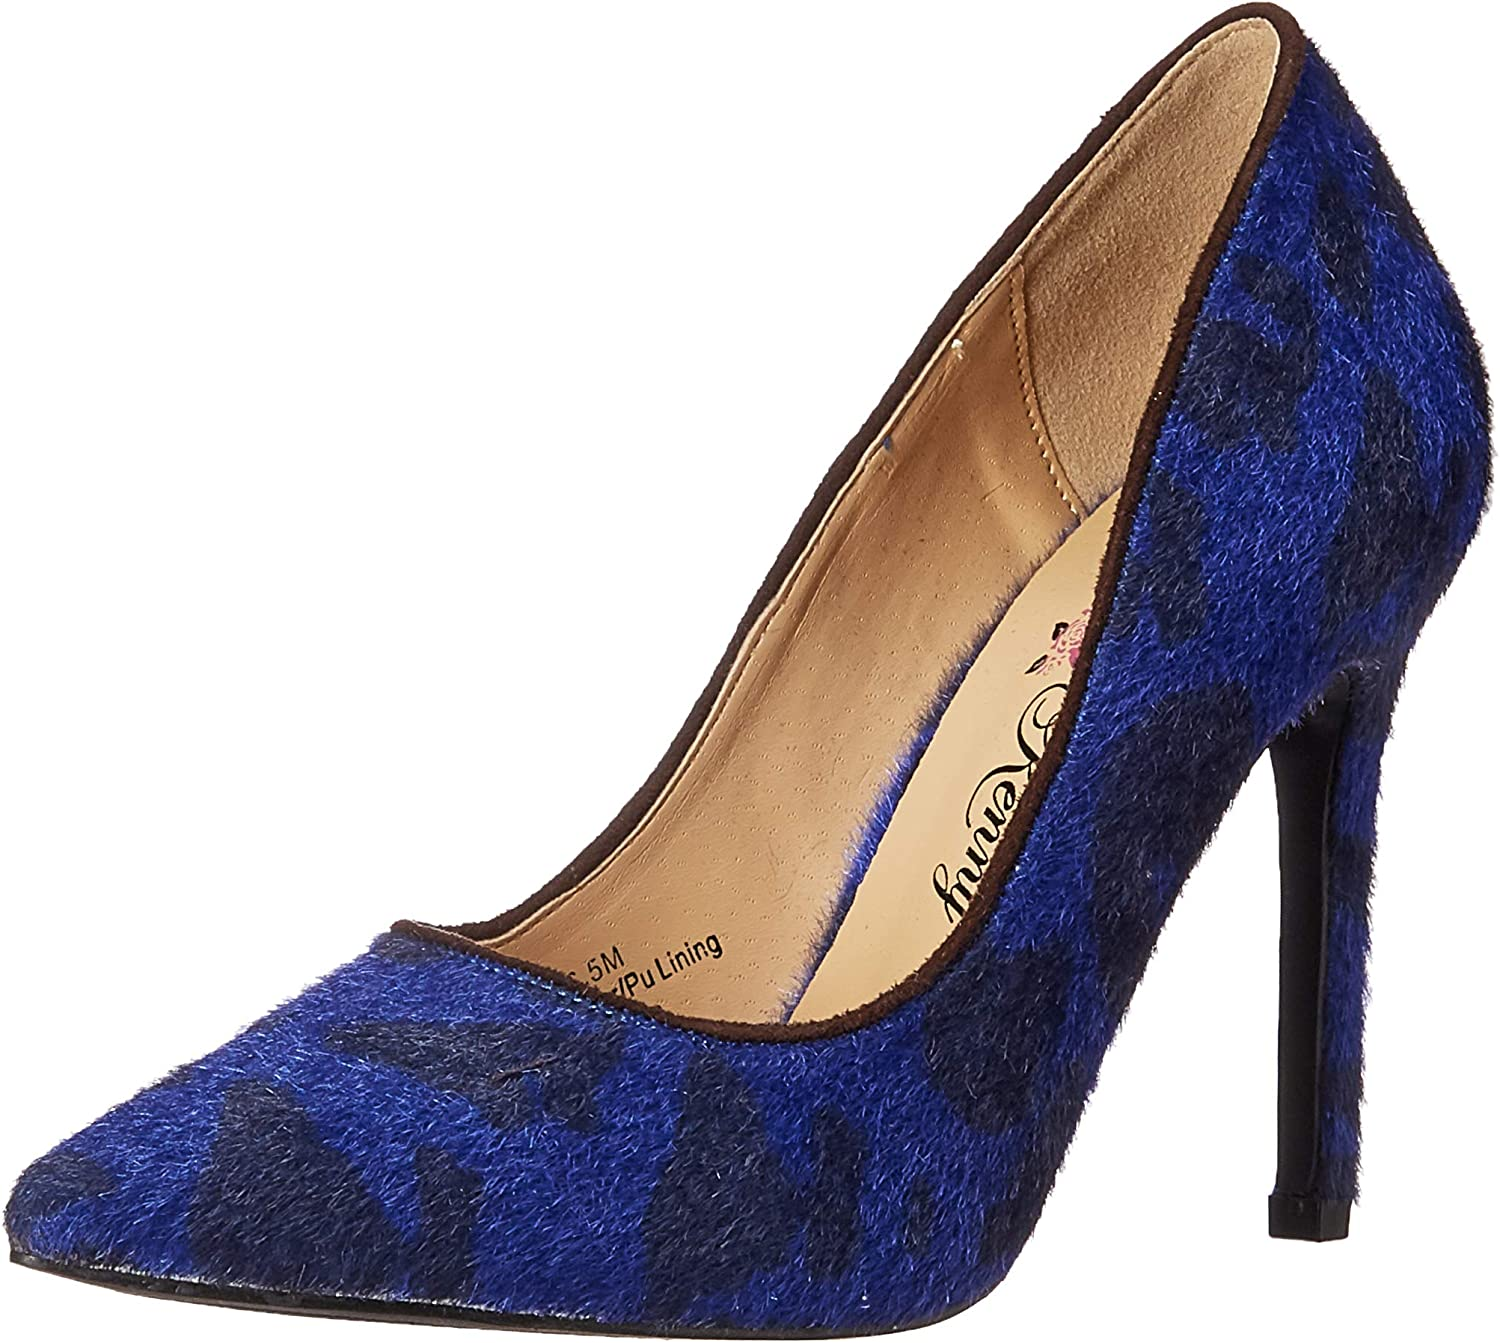 Penny Loves Kenny Ops Women's 70%OFFアウトレット Pump セール価格